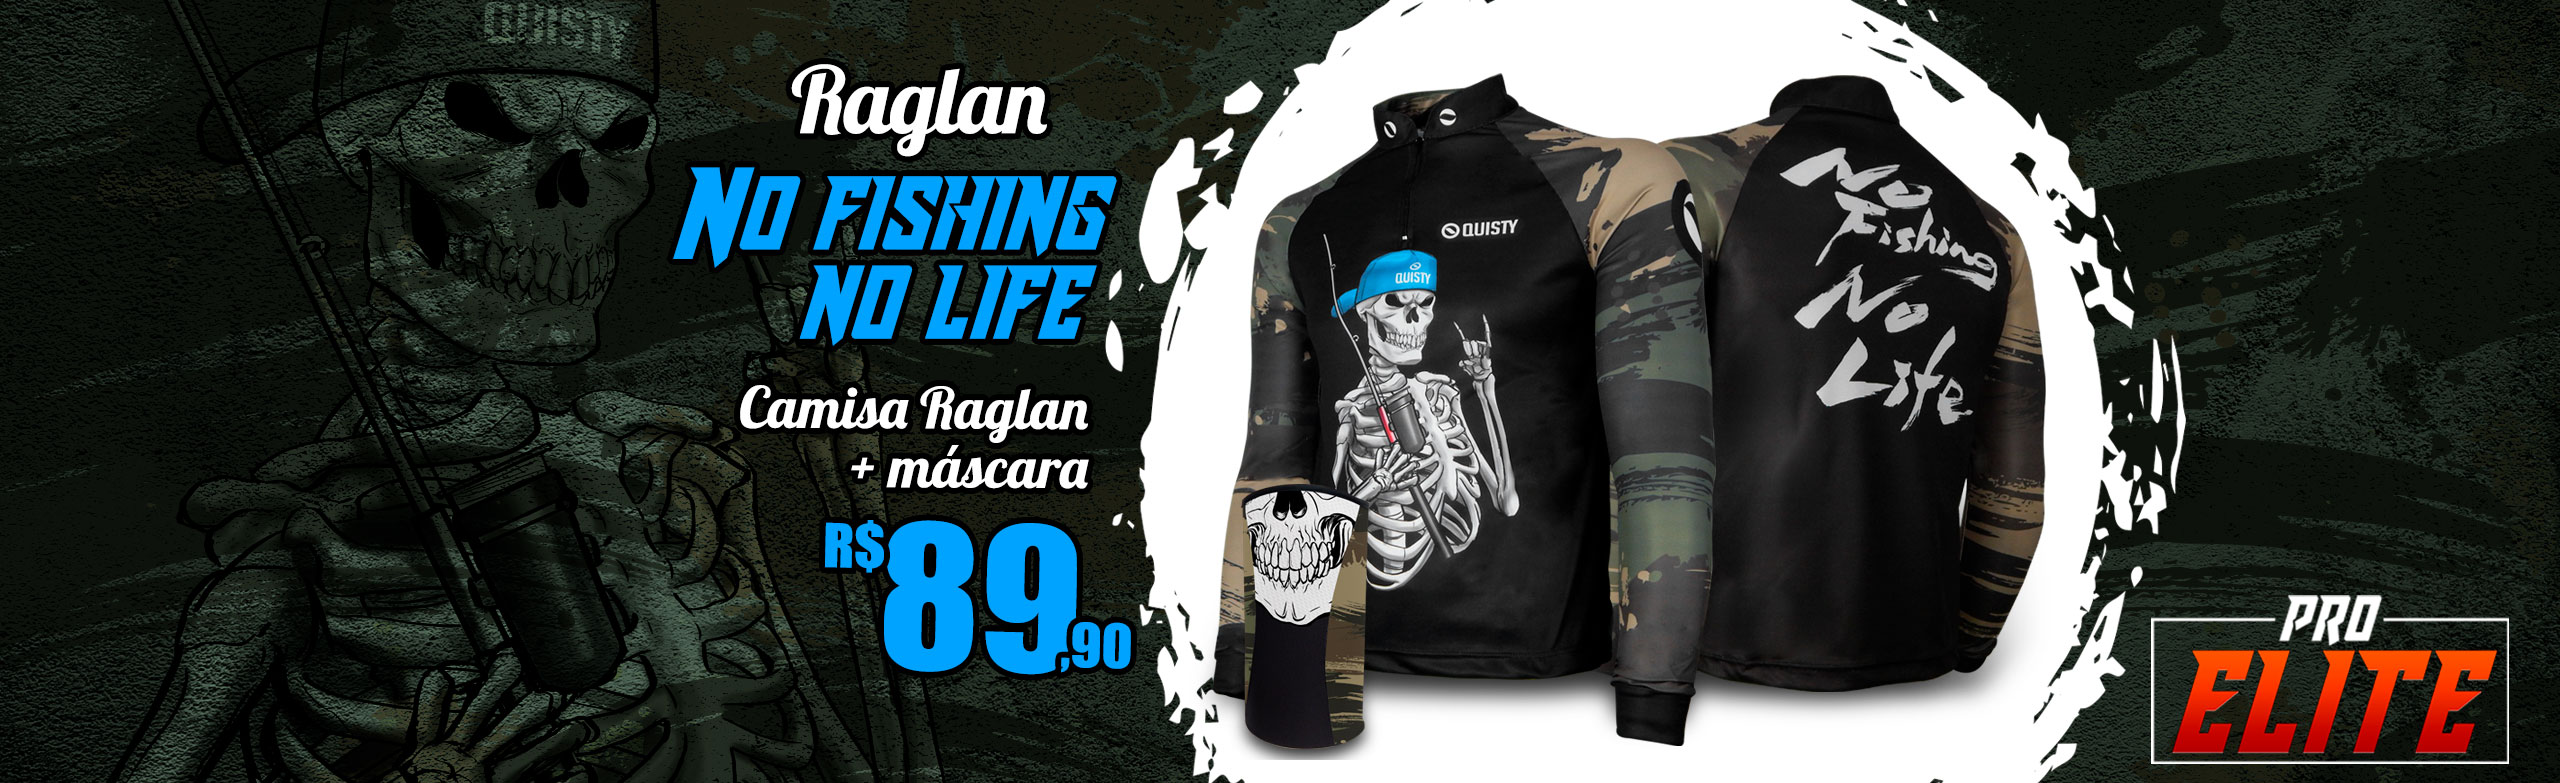 Camisa Raglan No Fishing No Life Banner